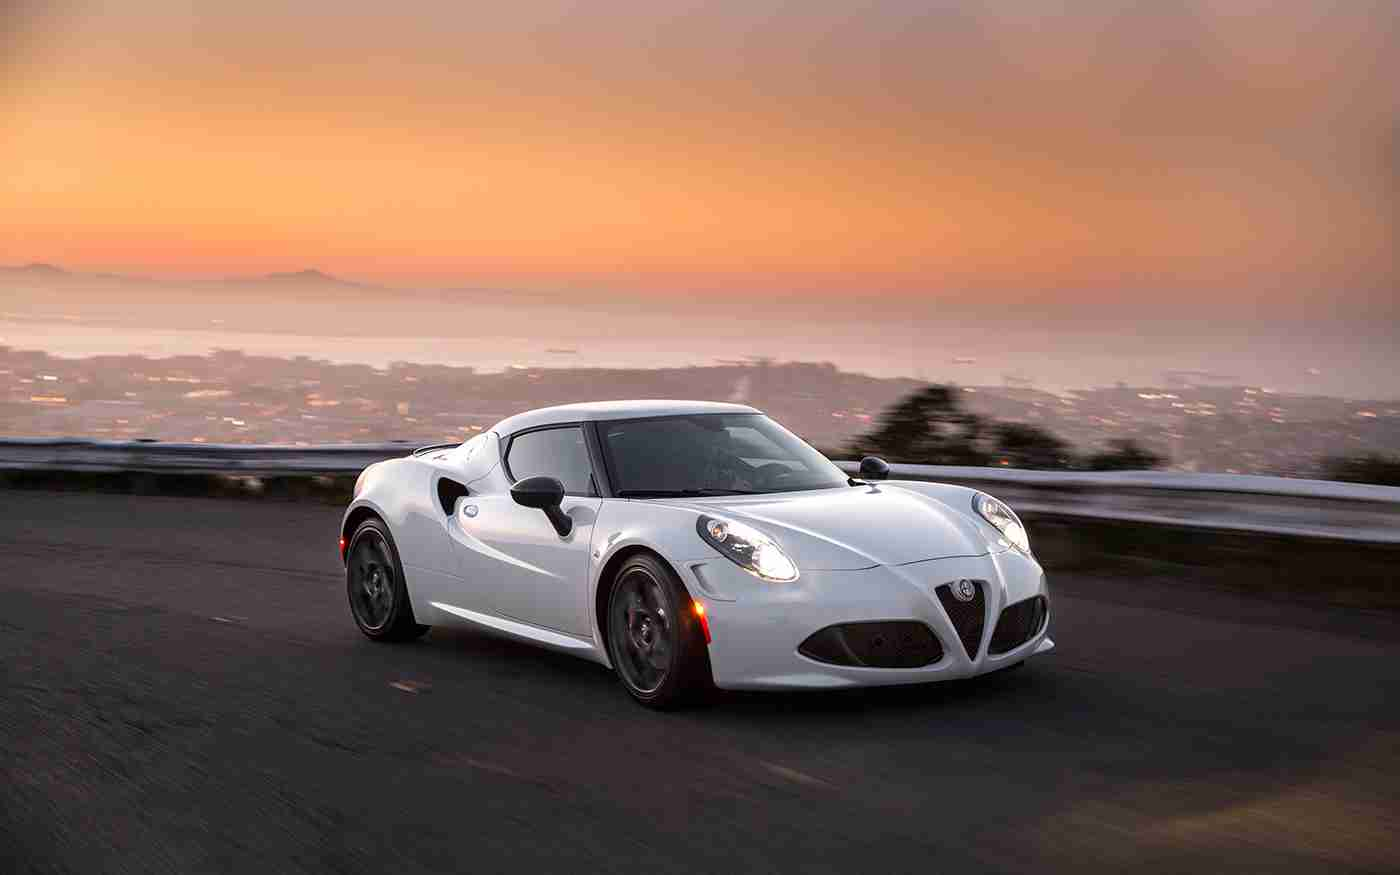 alfa romeo 4c test drive a rough ride in a smooth car. Black Bedroom Furniture Sets. Home Design Ideas